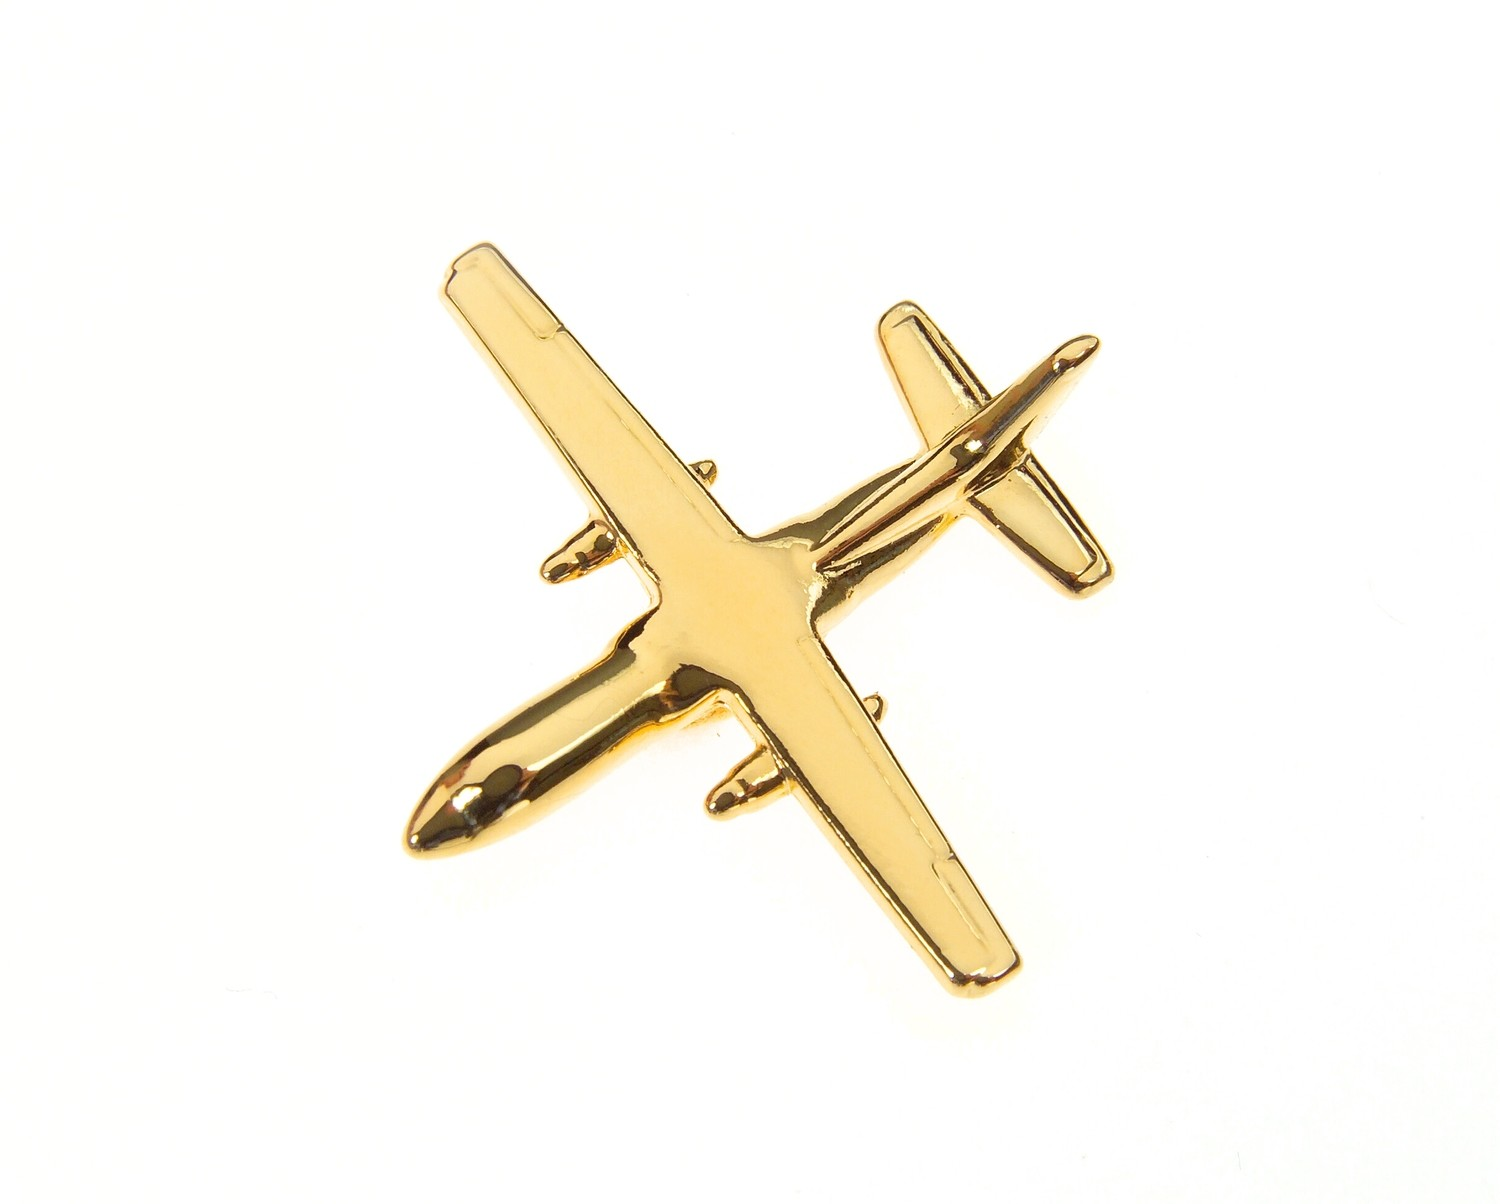 Antonov An140 Gold Plated Tie / Lapel Pin